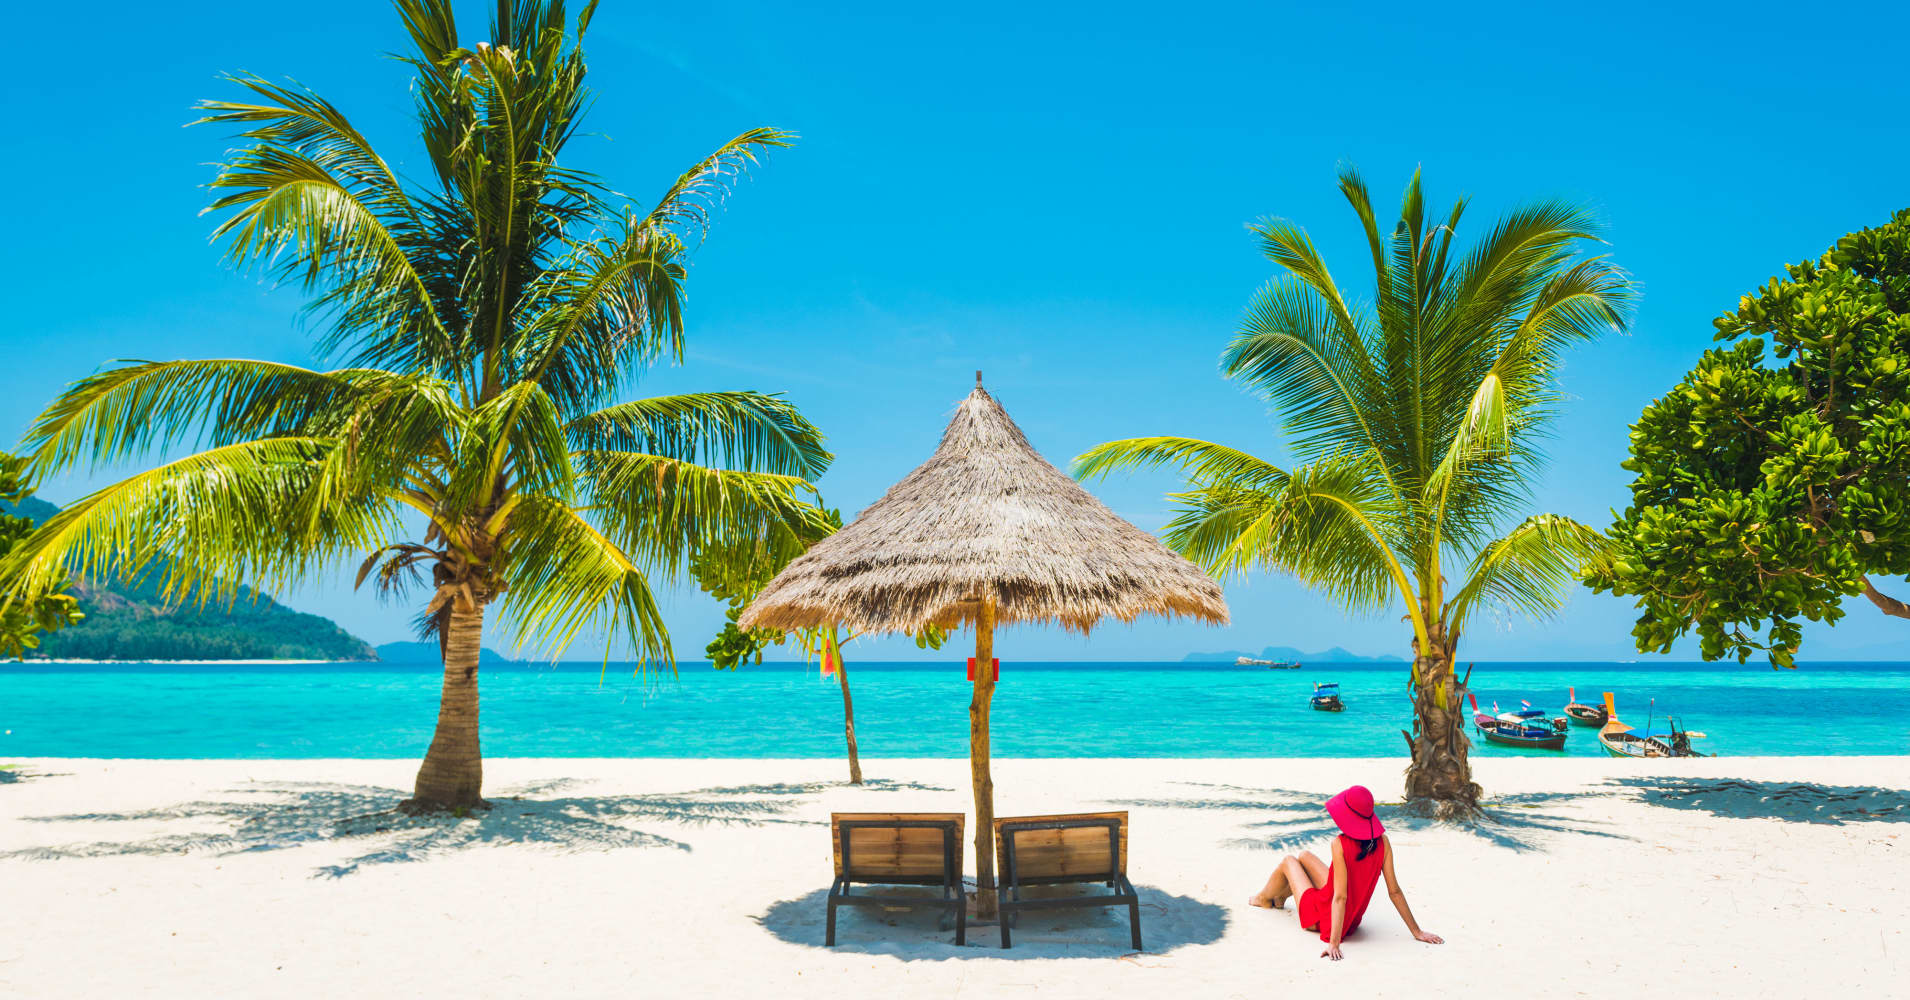 Cambodia is the cheapest place to retire aboard. Here are the other 4